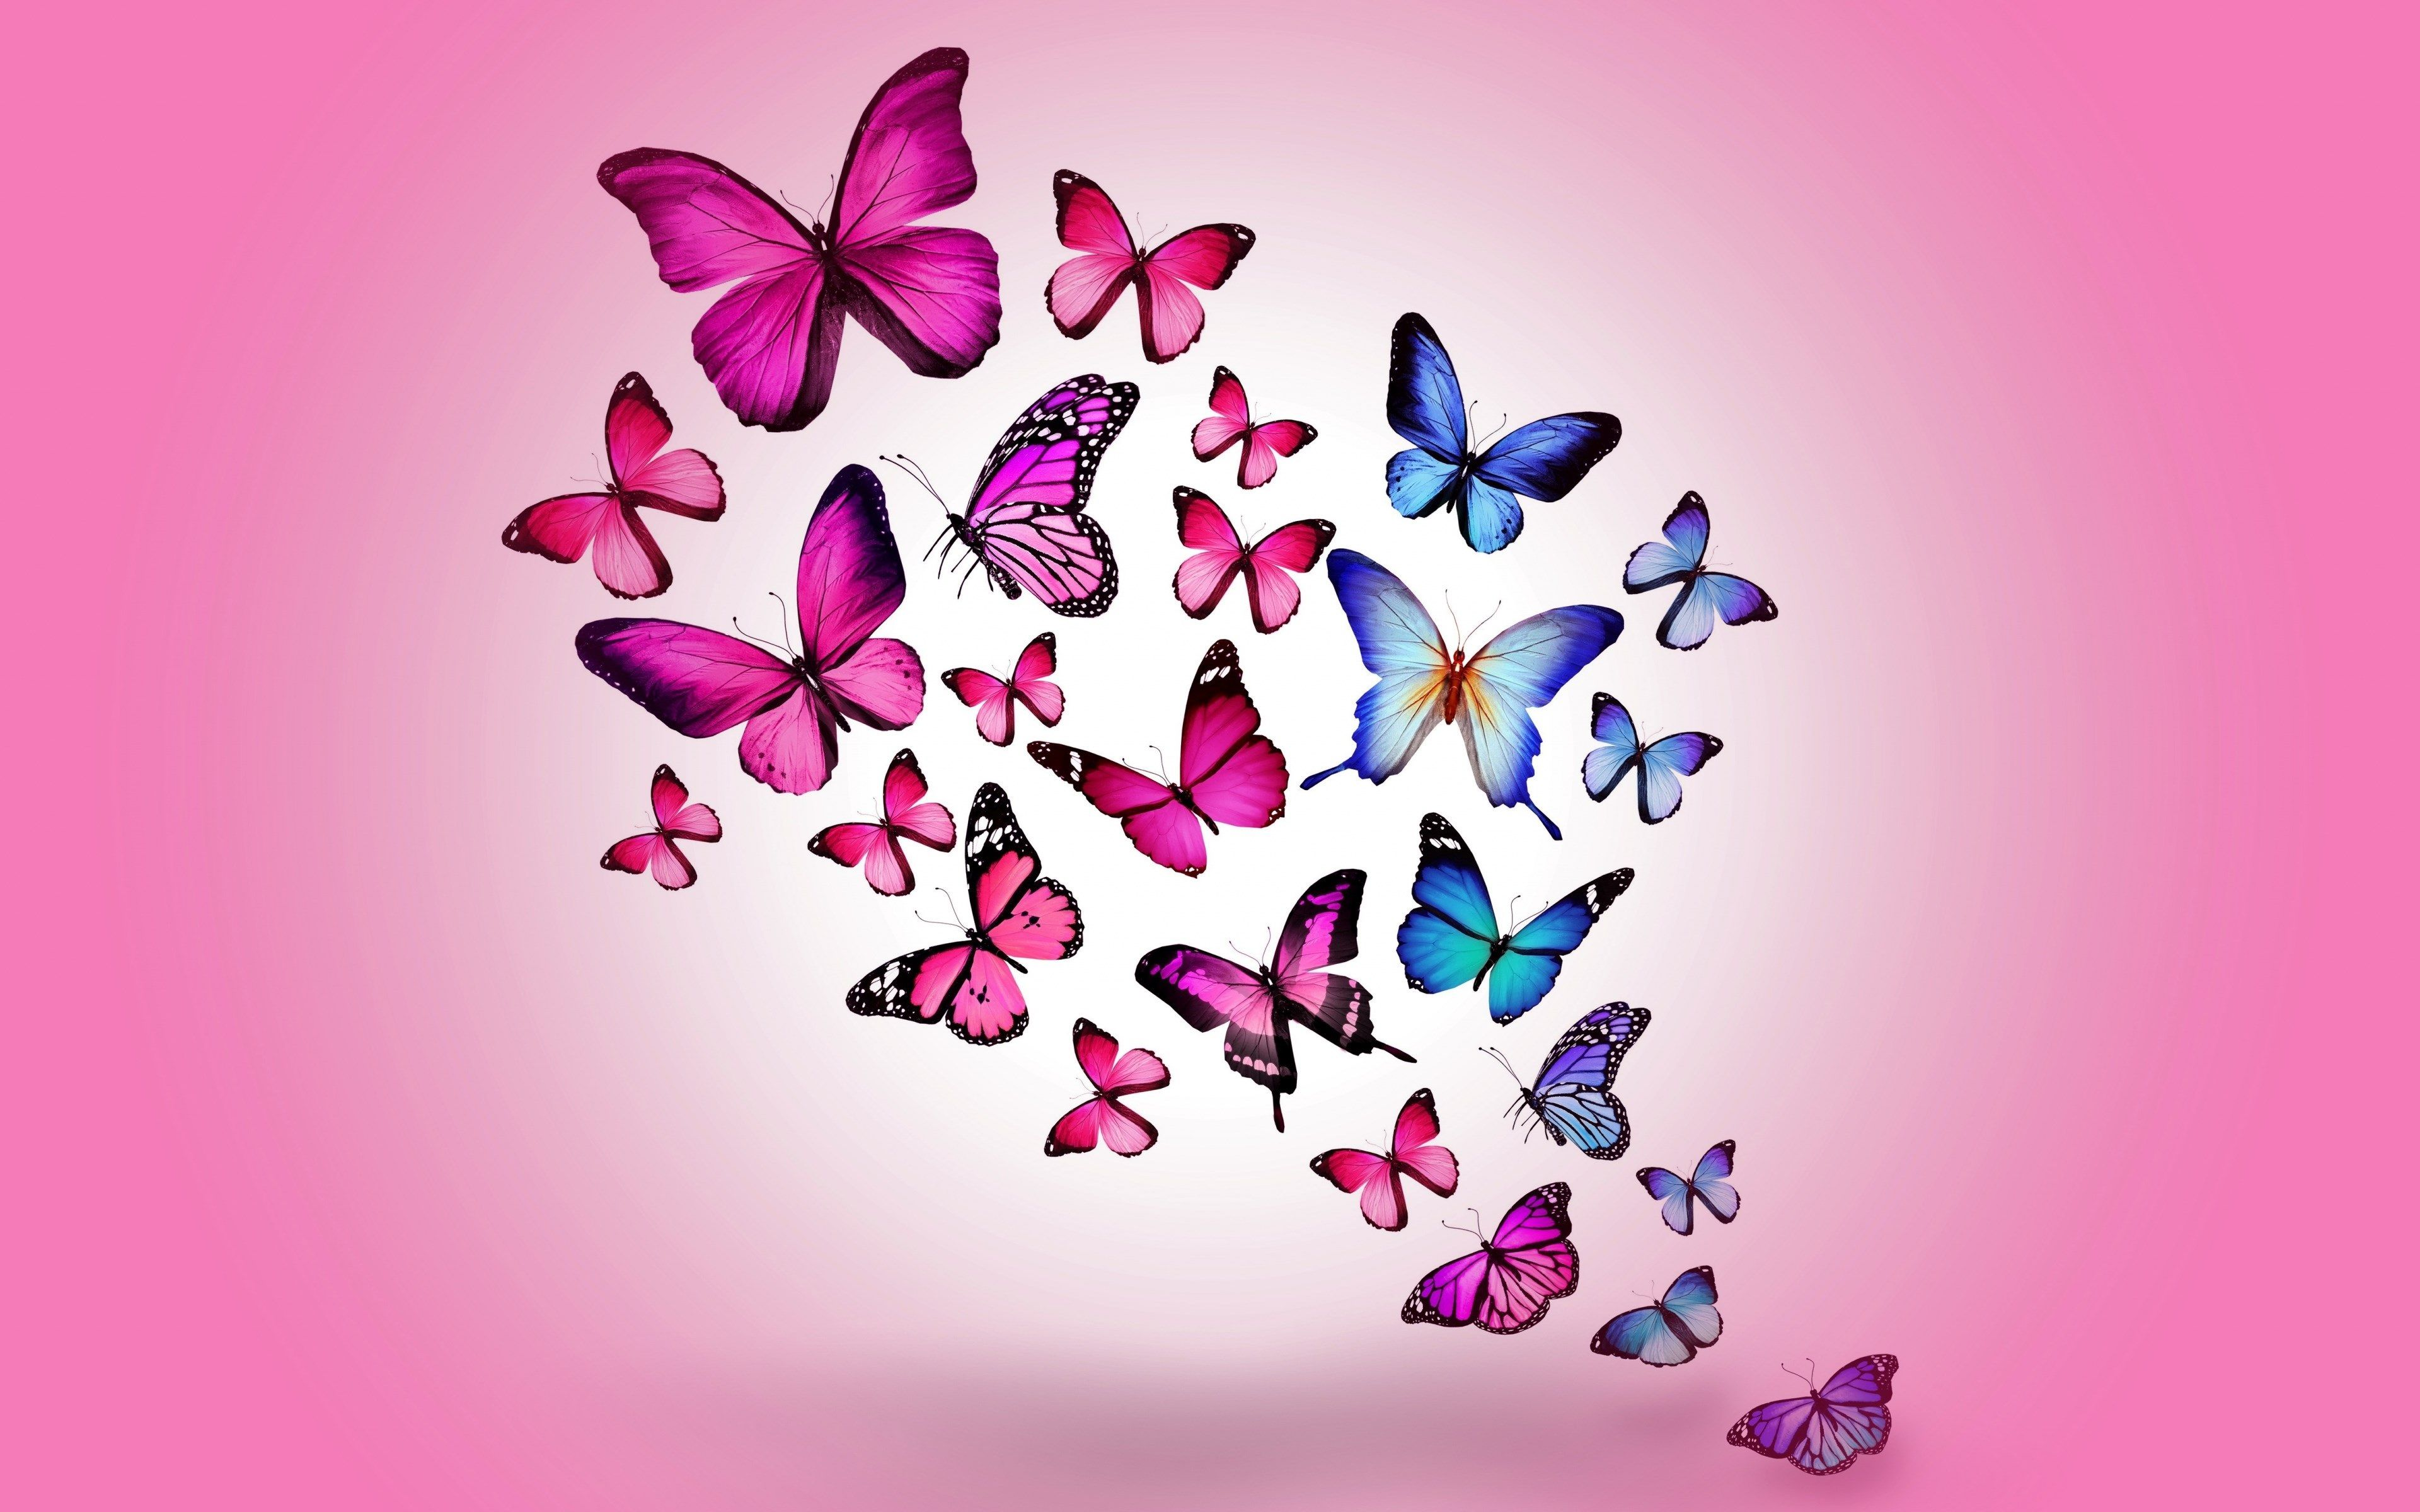 3840x2400 Butterfly 4k Background Wallpaper For Pc Butterfly Wallpaper Butterfly Artwork Butterfly Design